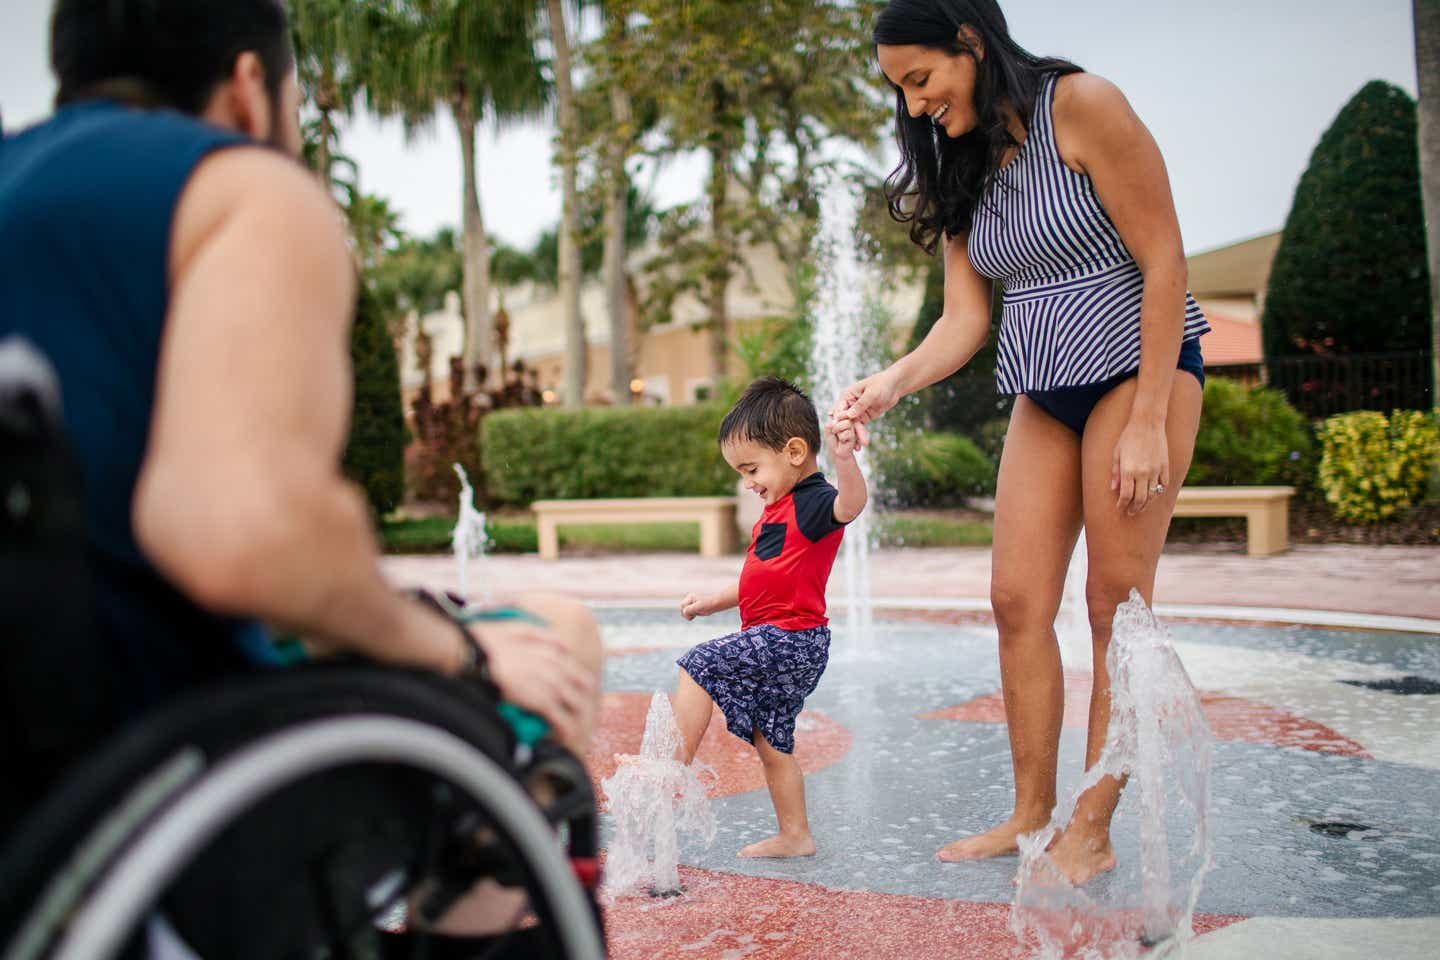 Author, Danny Pitaluga (left), his wife, Val (right) and son, Joey (middle), wear their swimsuits near a fountain park area at our Orange Lake Resort located in Orlando, Florida.